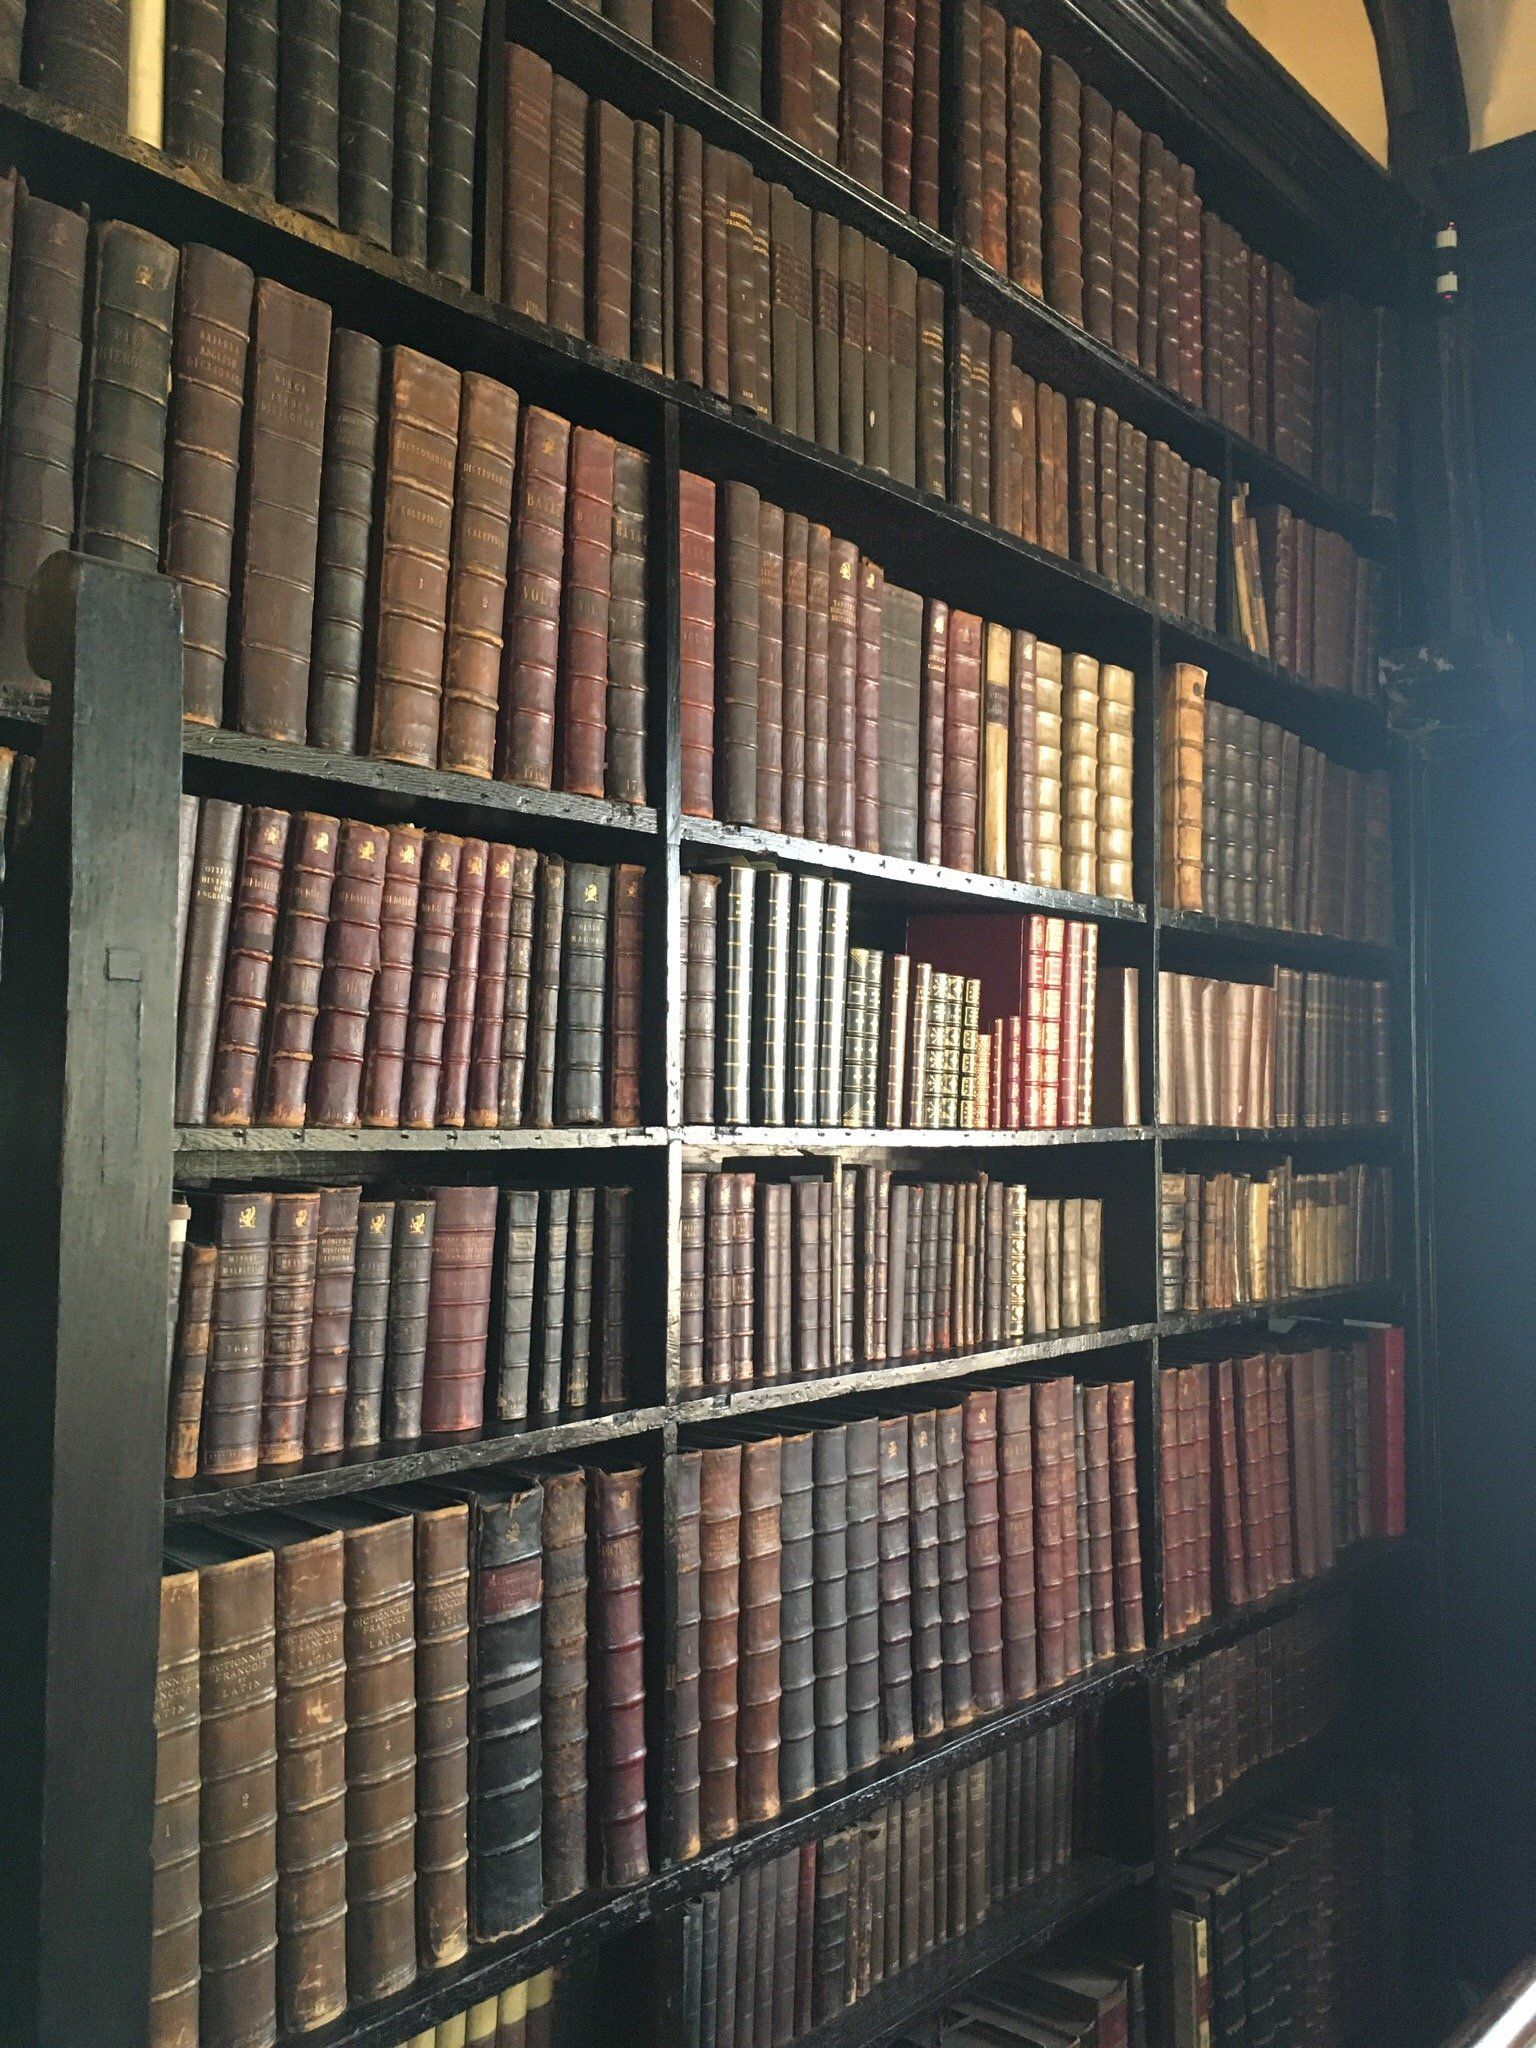 The Oldest Public Library In English Speaking World